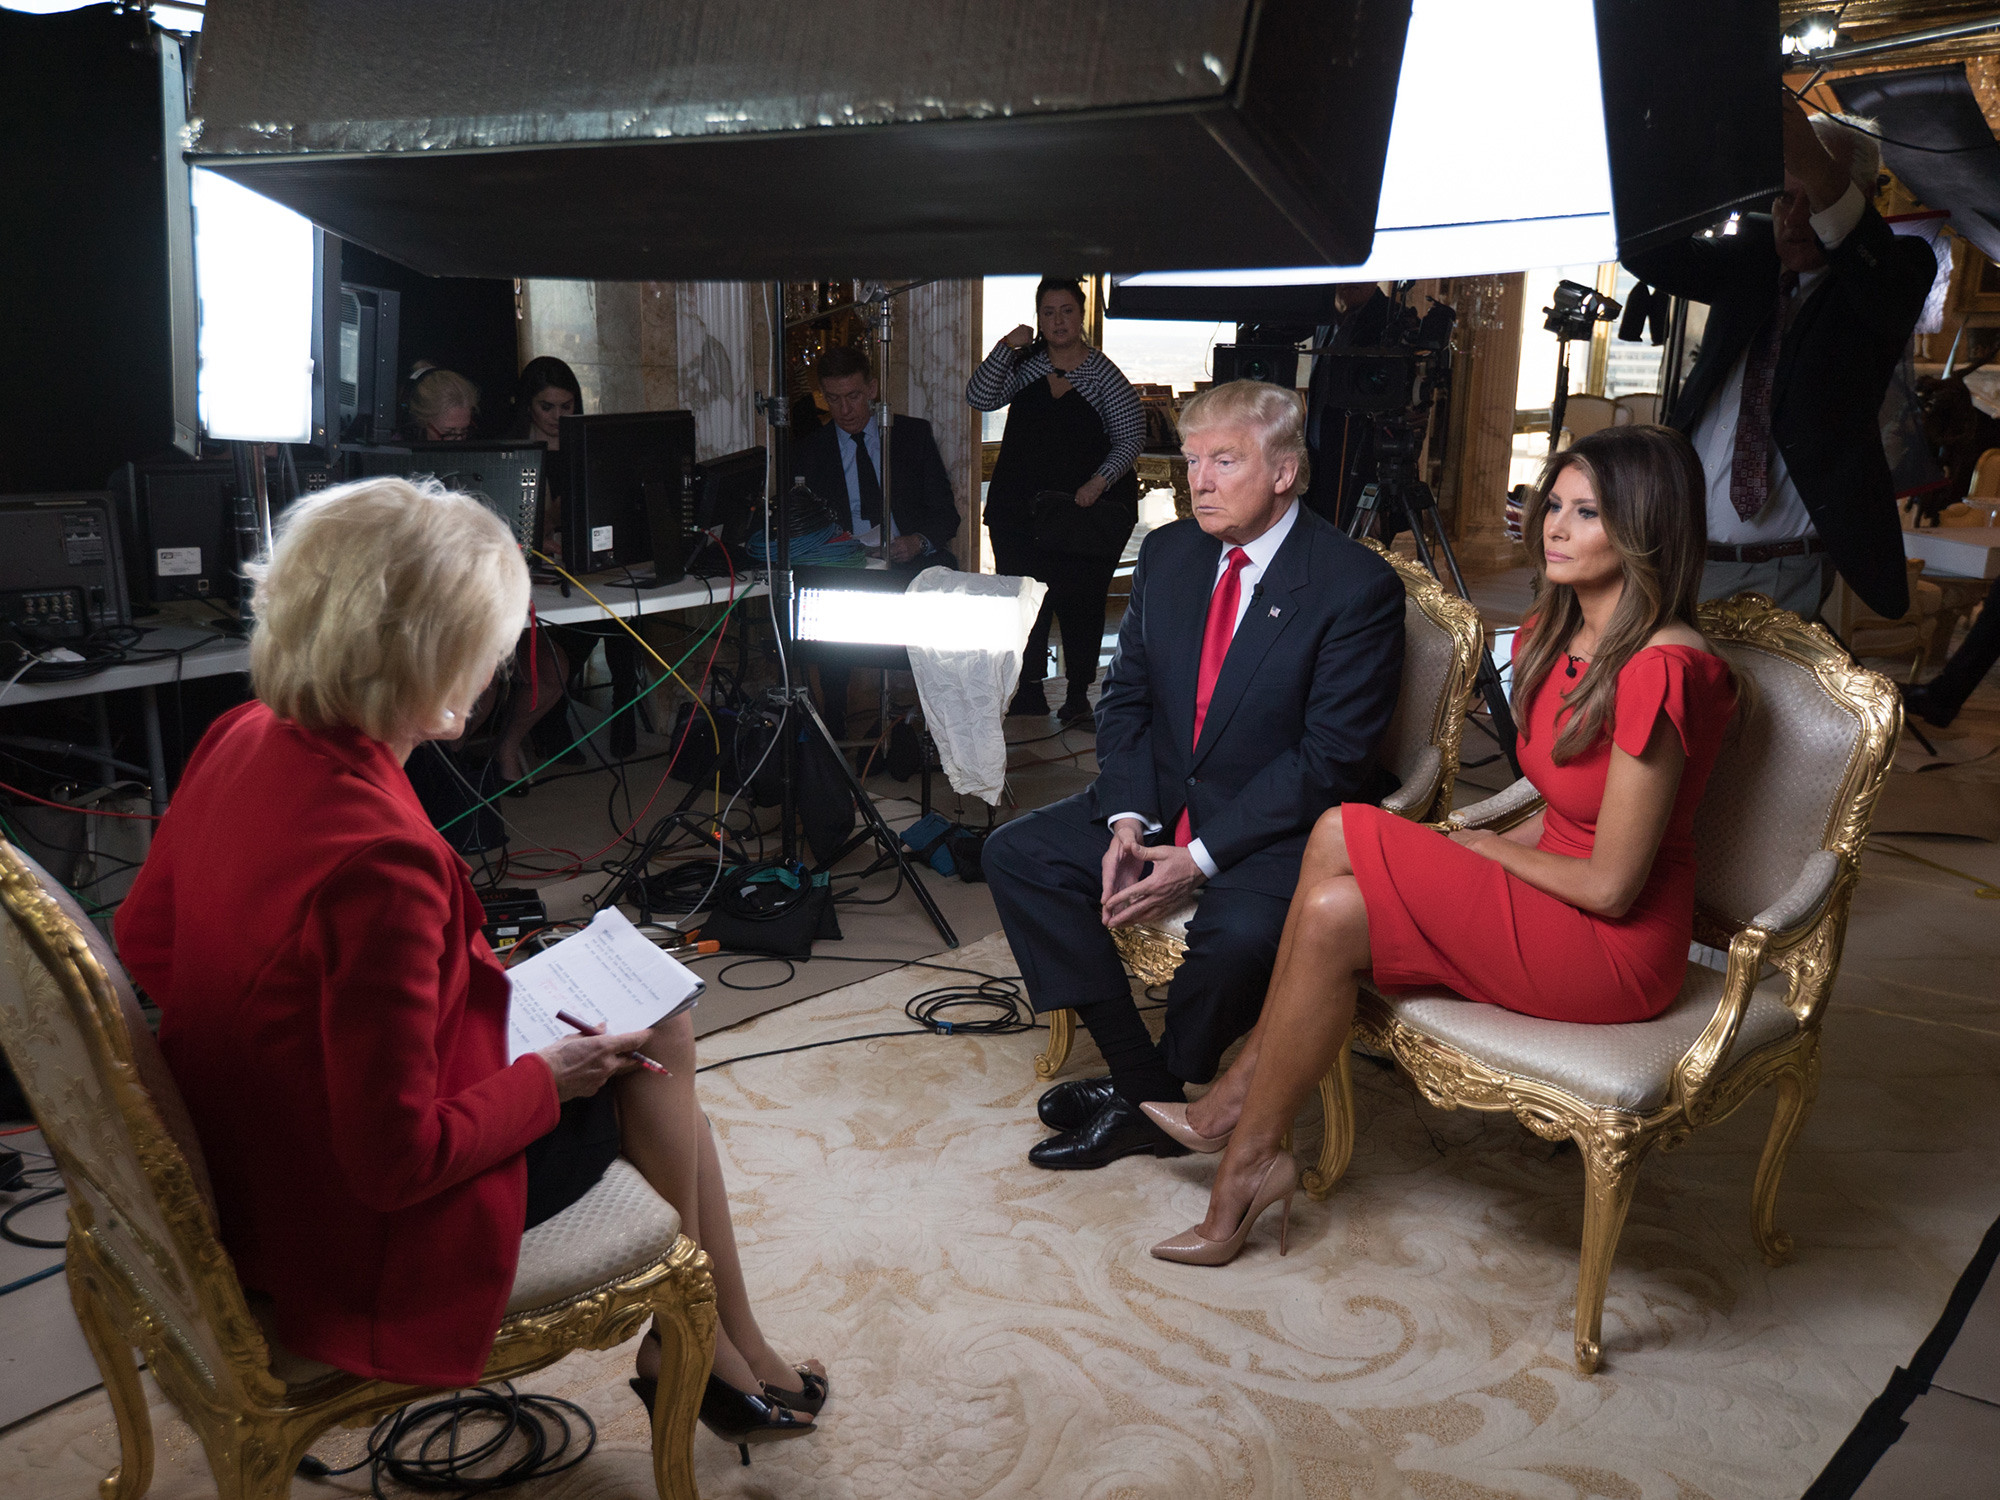 60 MINUTES Correspondent Lesley Stahl interviews President-elect Donald J. Trump and his family including Melania, Ivanka, Tiffany, Eric and Donald, Jr., at his Manhattan home this afternoon(11). The sit-down was his first post-election interview for television and will be broadcast on 60 MINUTES Sunday, Nov. 13 (7;00-8:00PM, ET/PT) on the CBS Television Network. PHOTO CREDIT: Chris Albert for CBSNews/60MINUTES